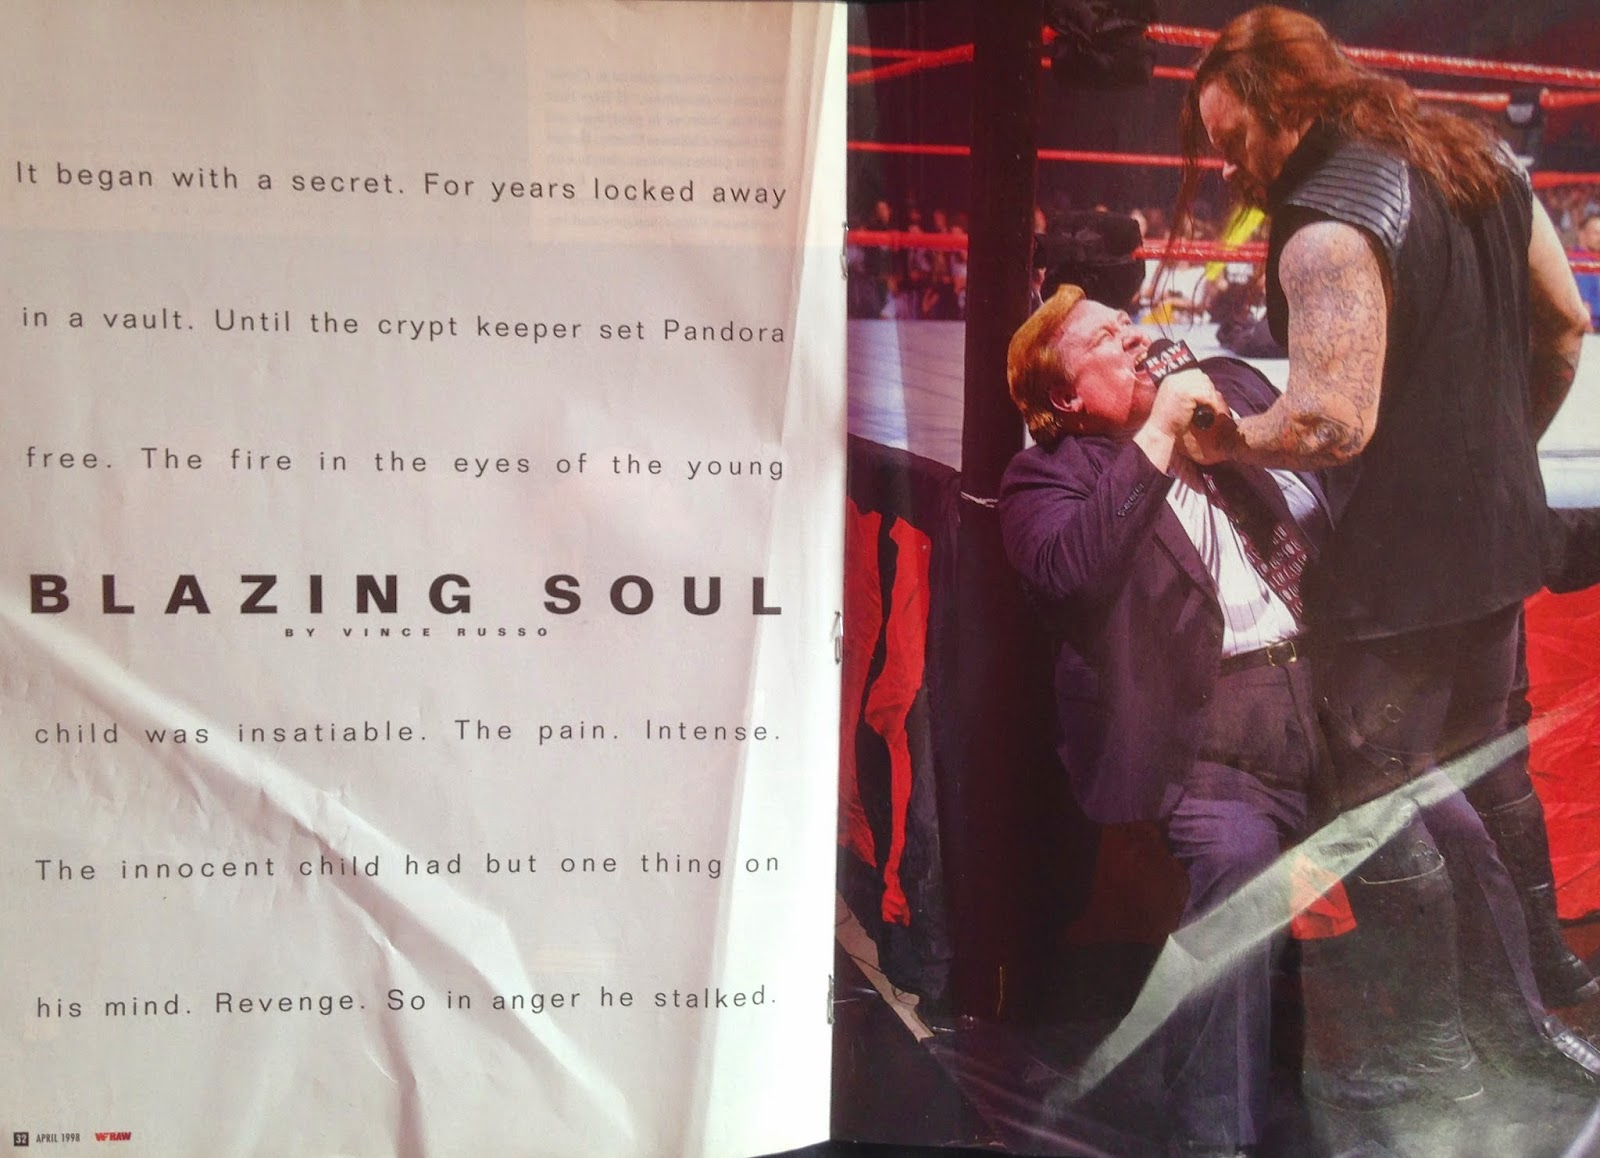 WWE - WWF Raw Magazine - April 1998 -  Undertaker vs. Kane picture essay